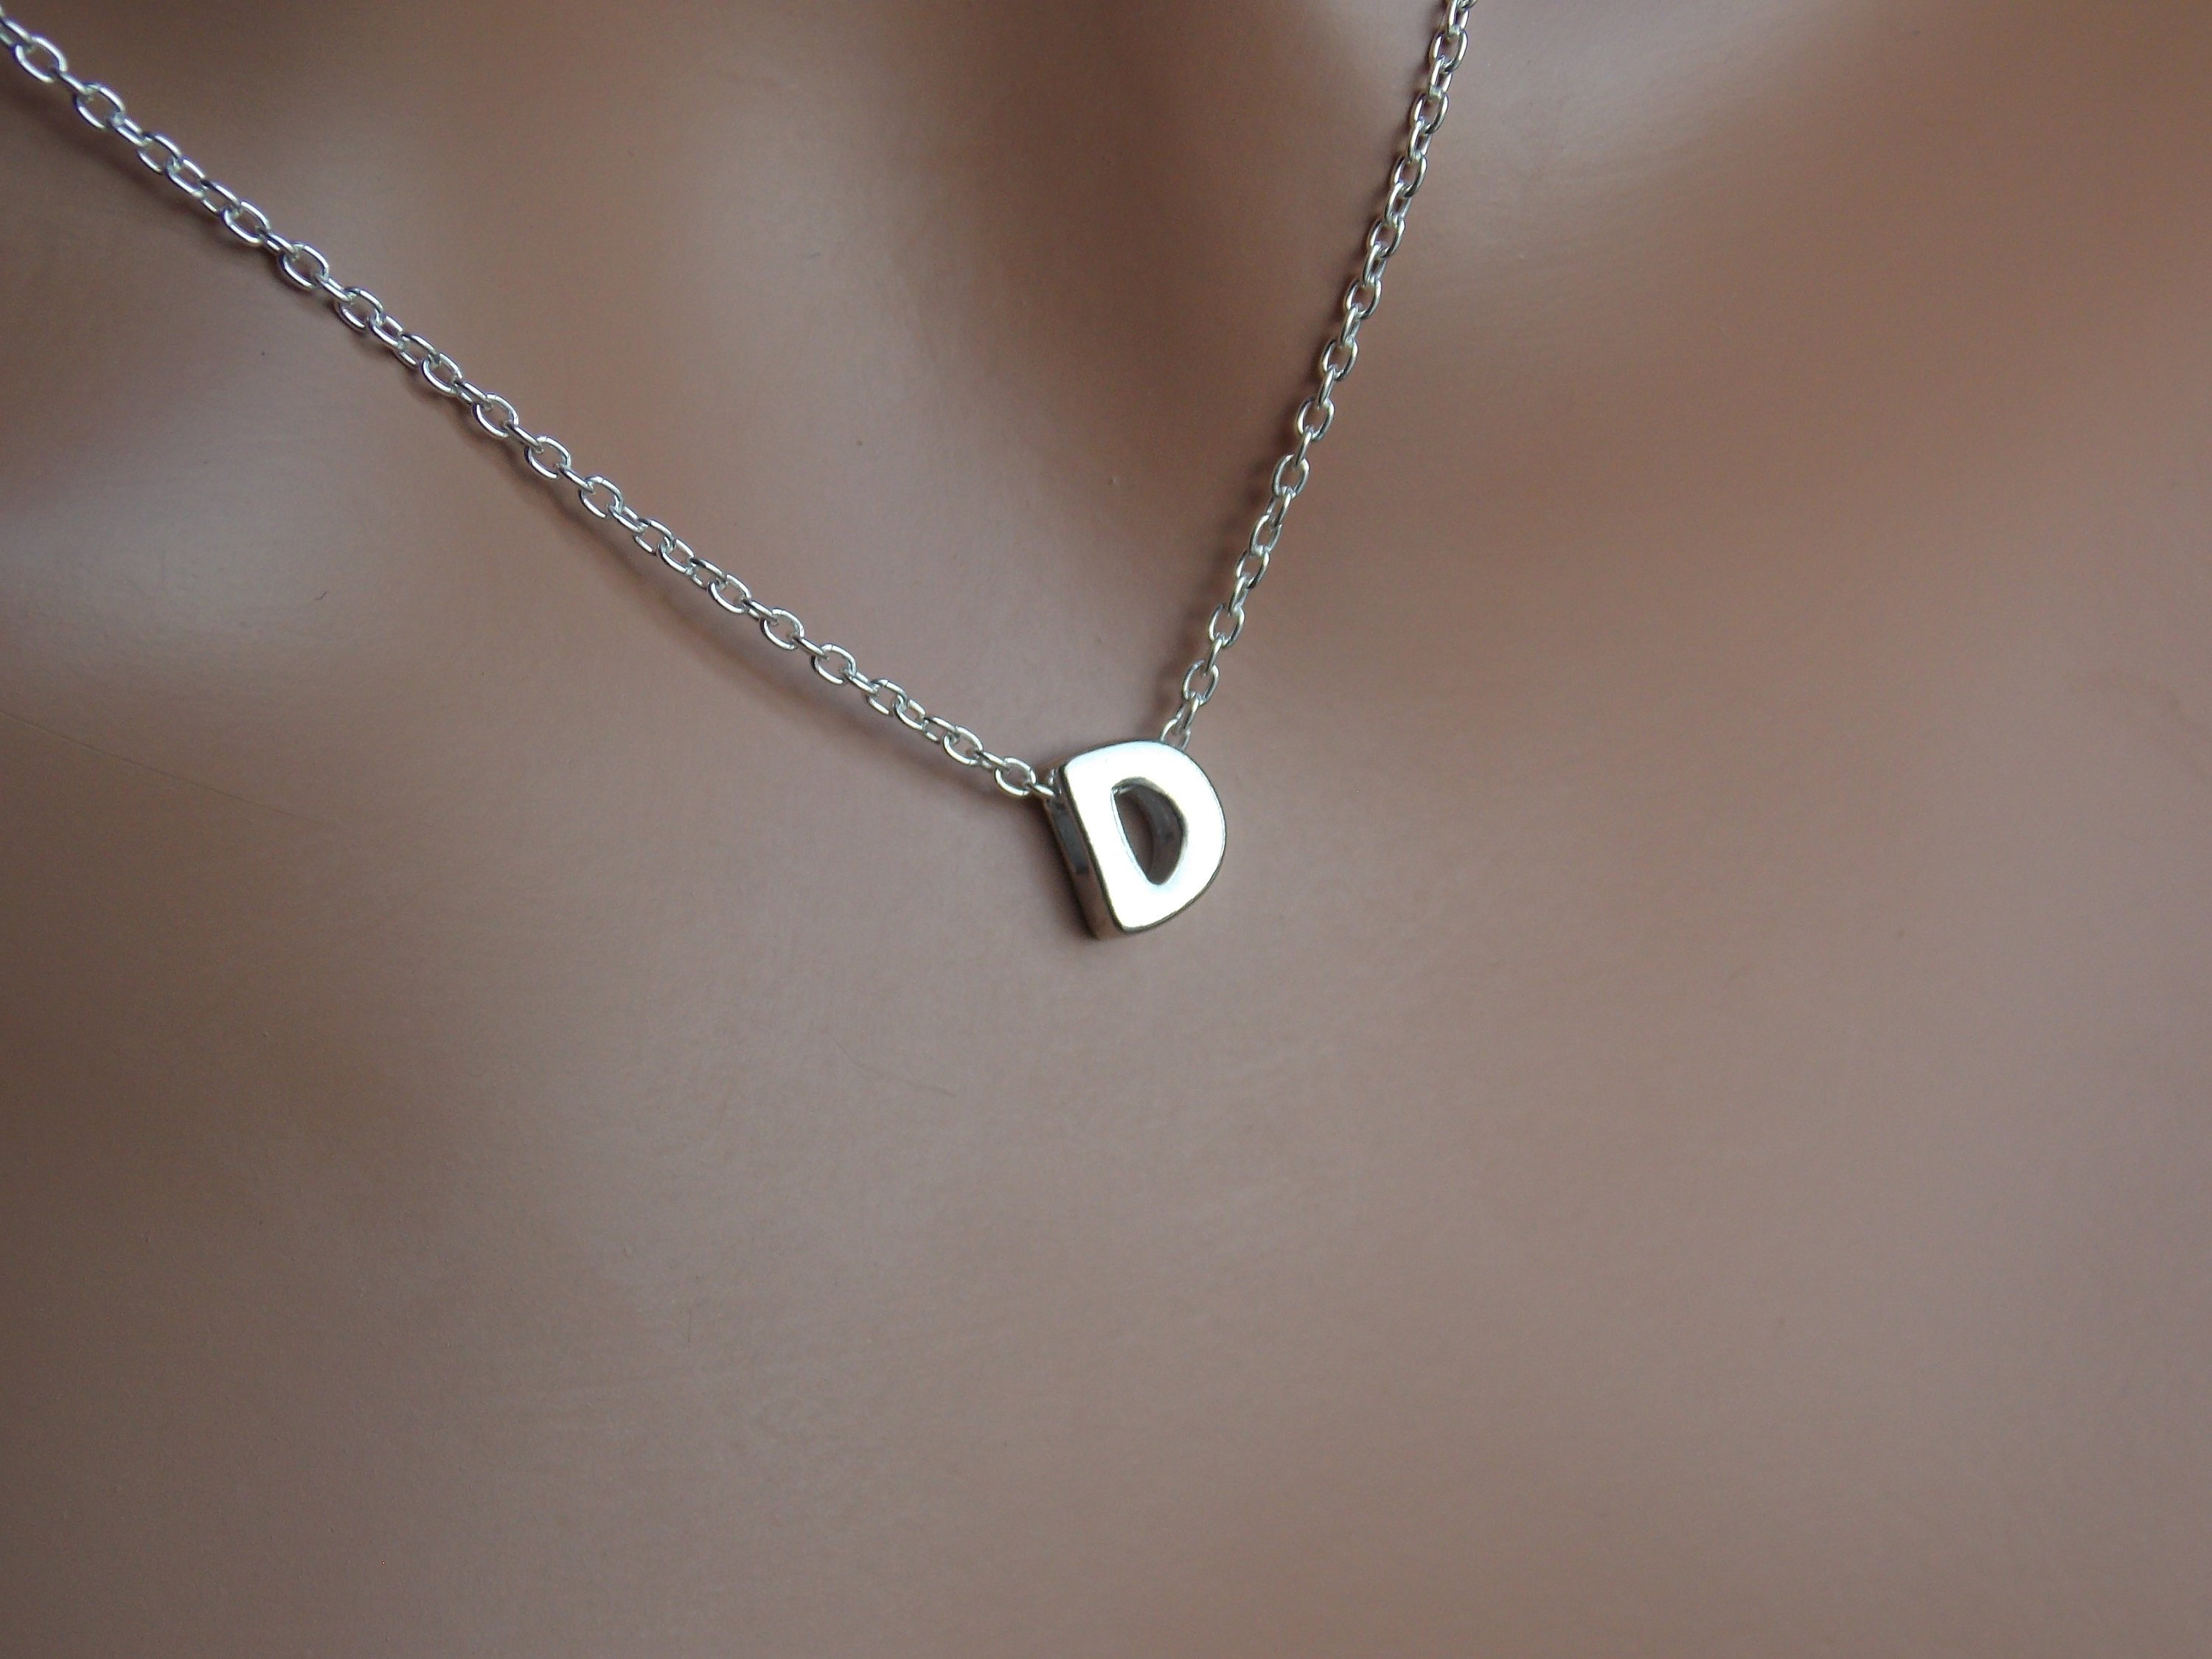 Initial D Necklace, Letter D, Letter D Necklace, Monogram D, Letter D Pendant, D Charm, D Jewelry, Alphabet, Sterling Silver D, Stampsink With Most Recent Letter V Alphabet Locket Element Necklaces (View 10 of 25)